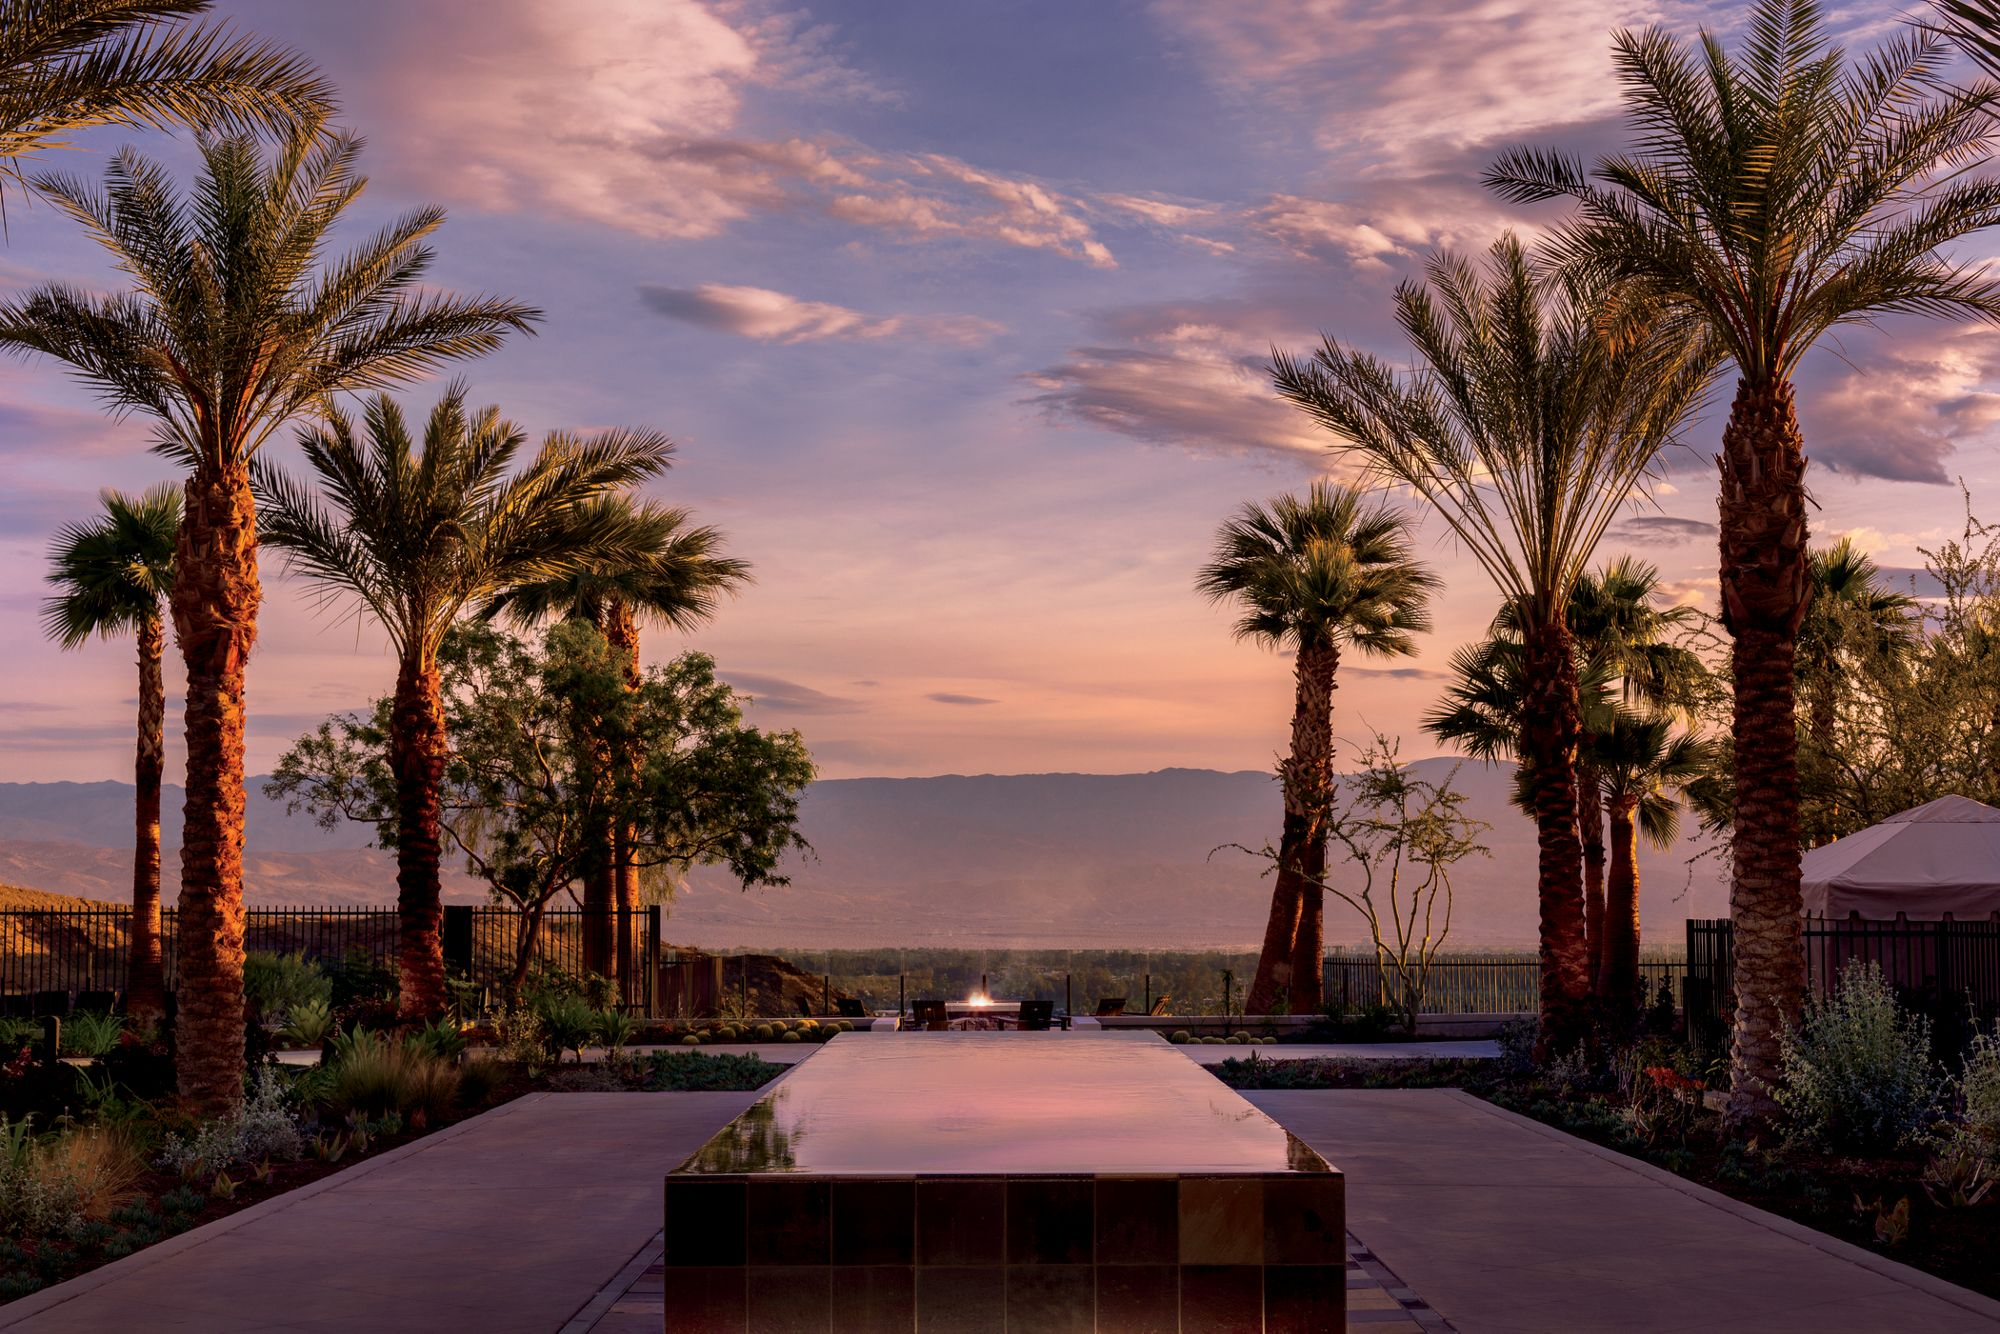 Reserve your stay at The Ritz-Carlton, Rancho Mirage.